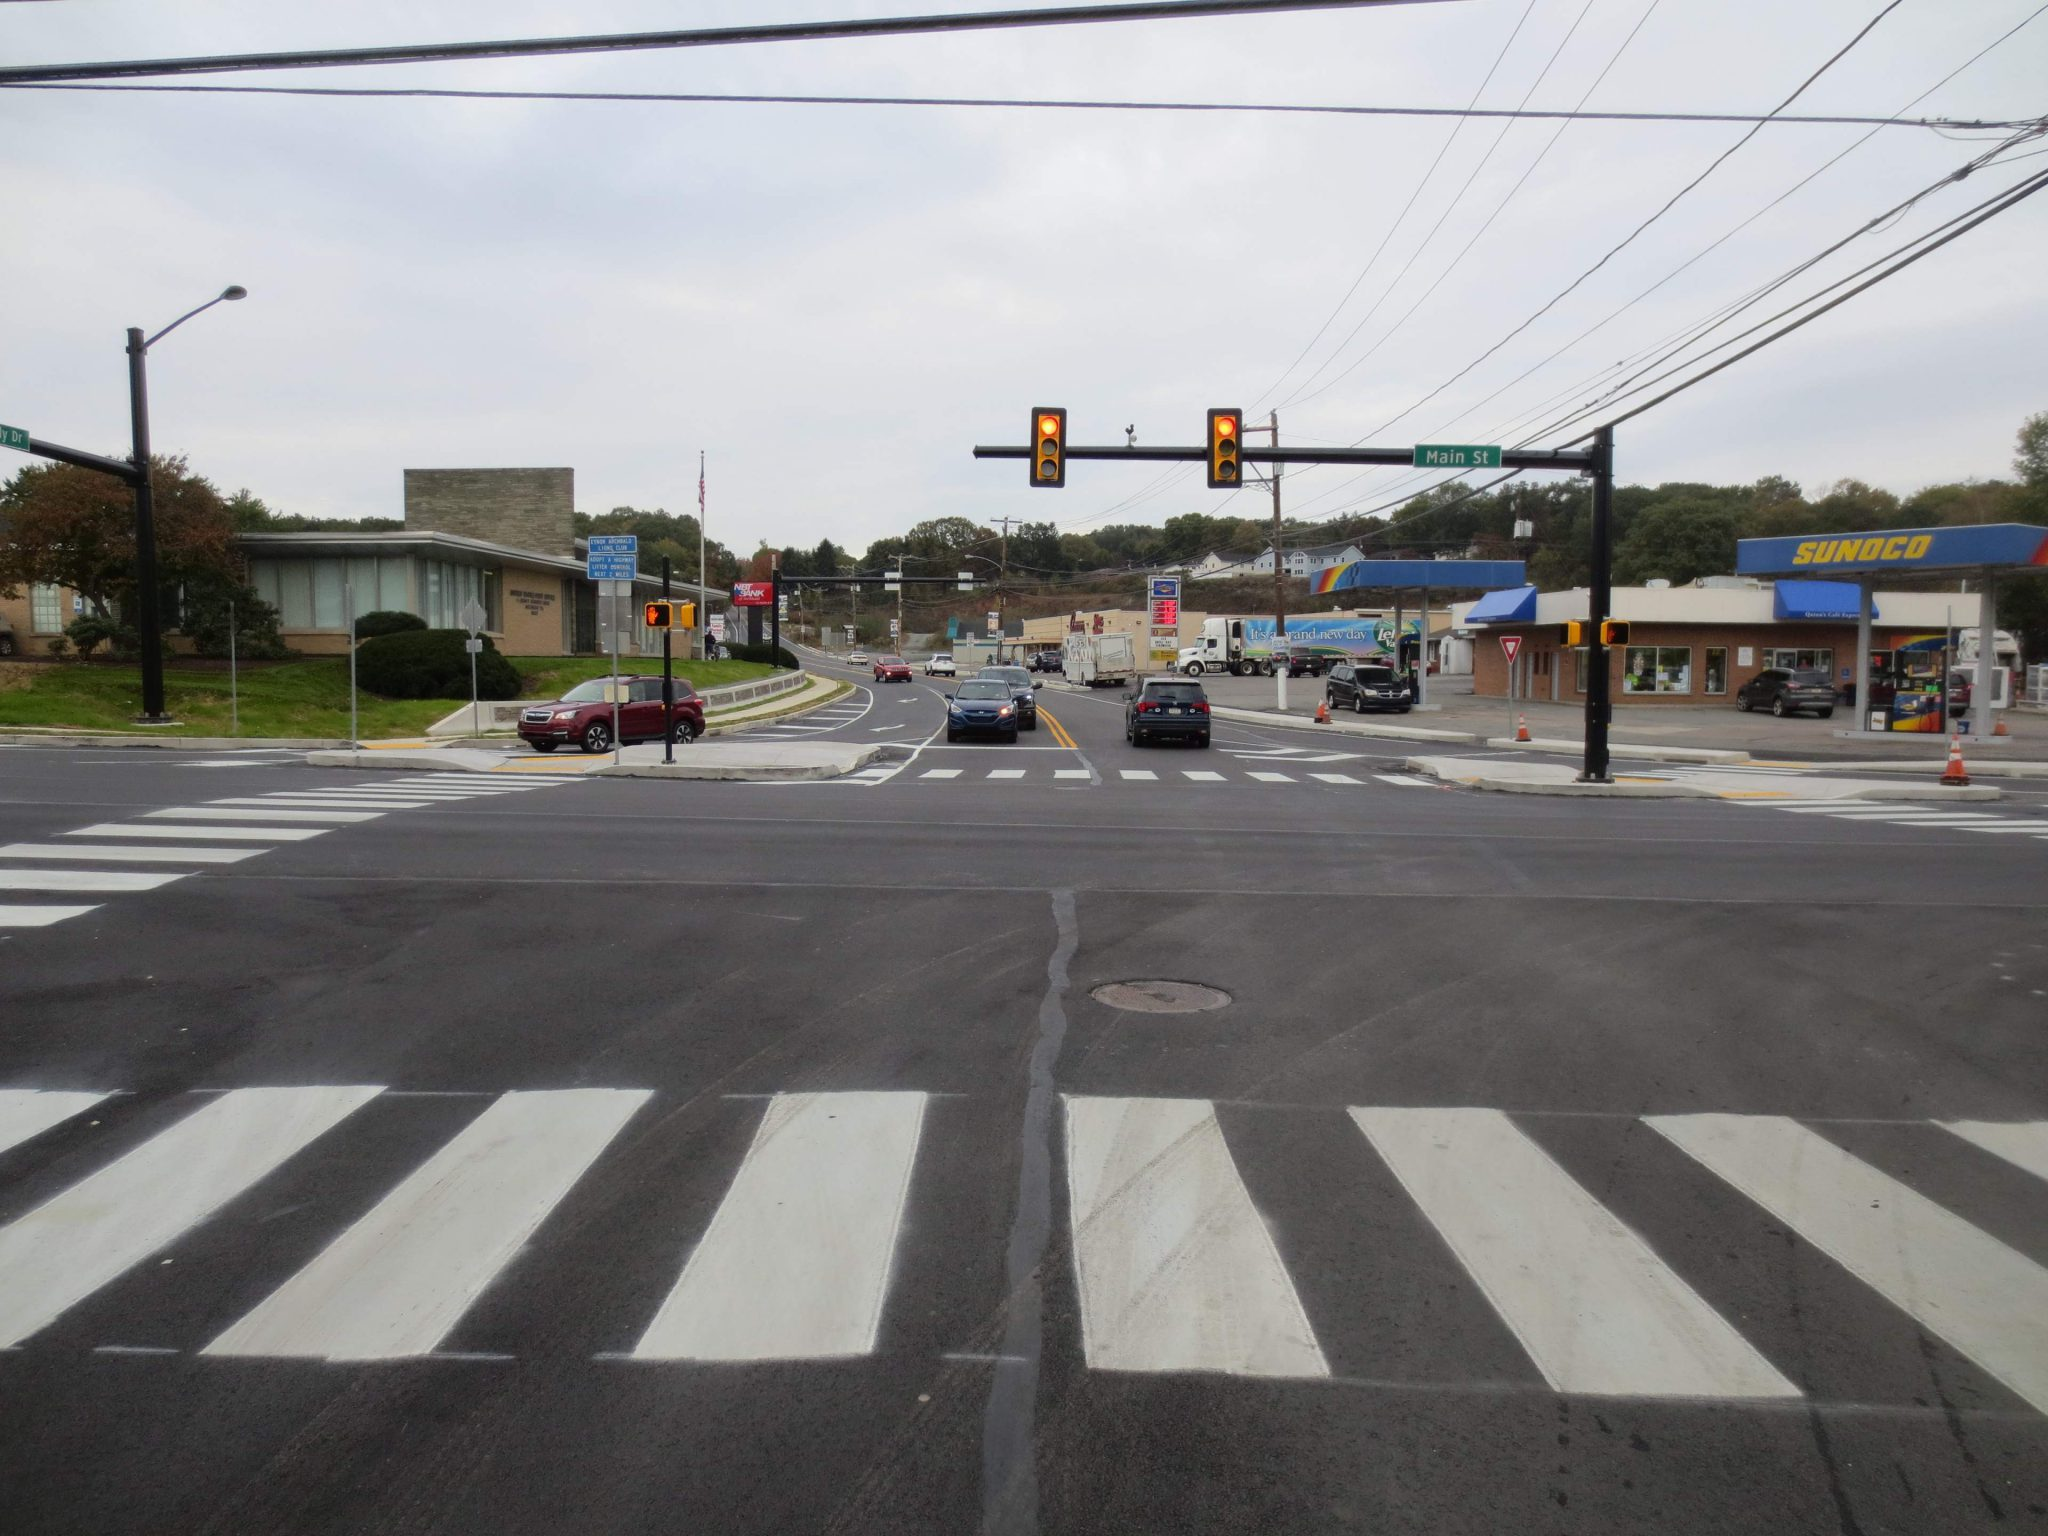 Major Project in PennDOT District 4-0 Nearing Completion